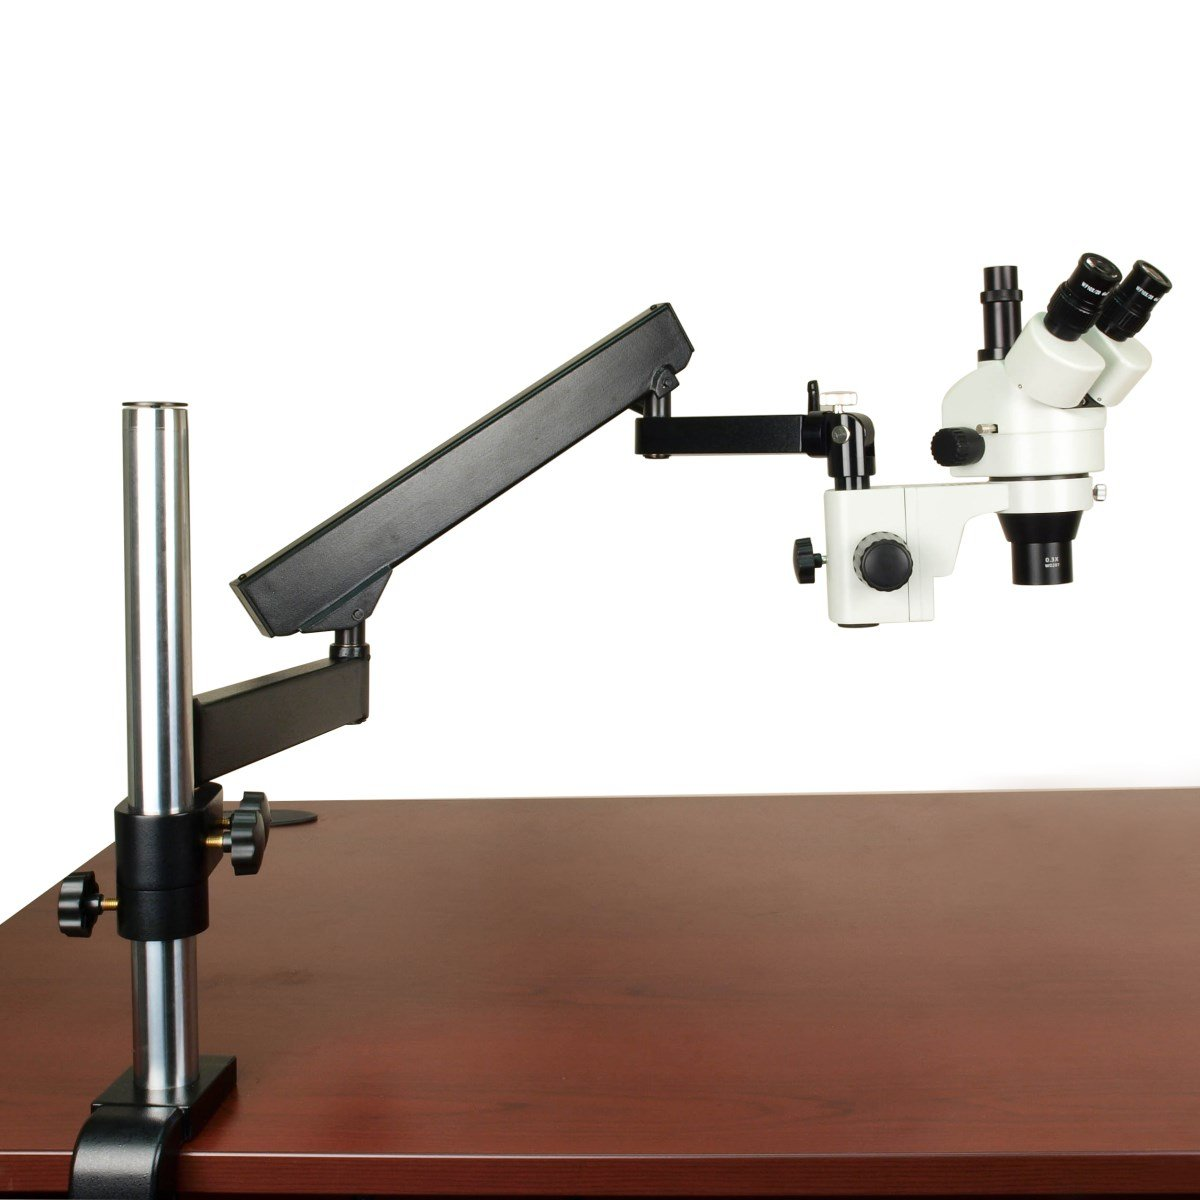 OMAX 2.1-45X Zoom Stereo Trinocular Microscope+Articulating Arm Stand by OMAX